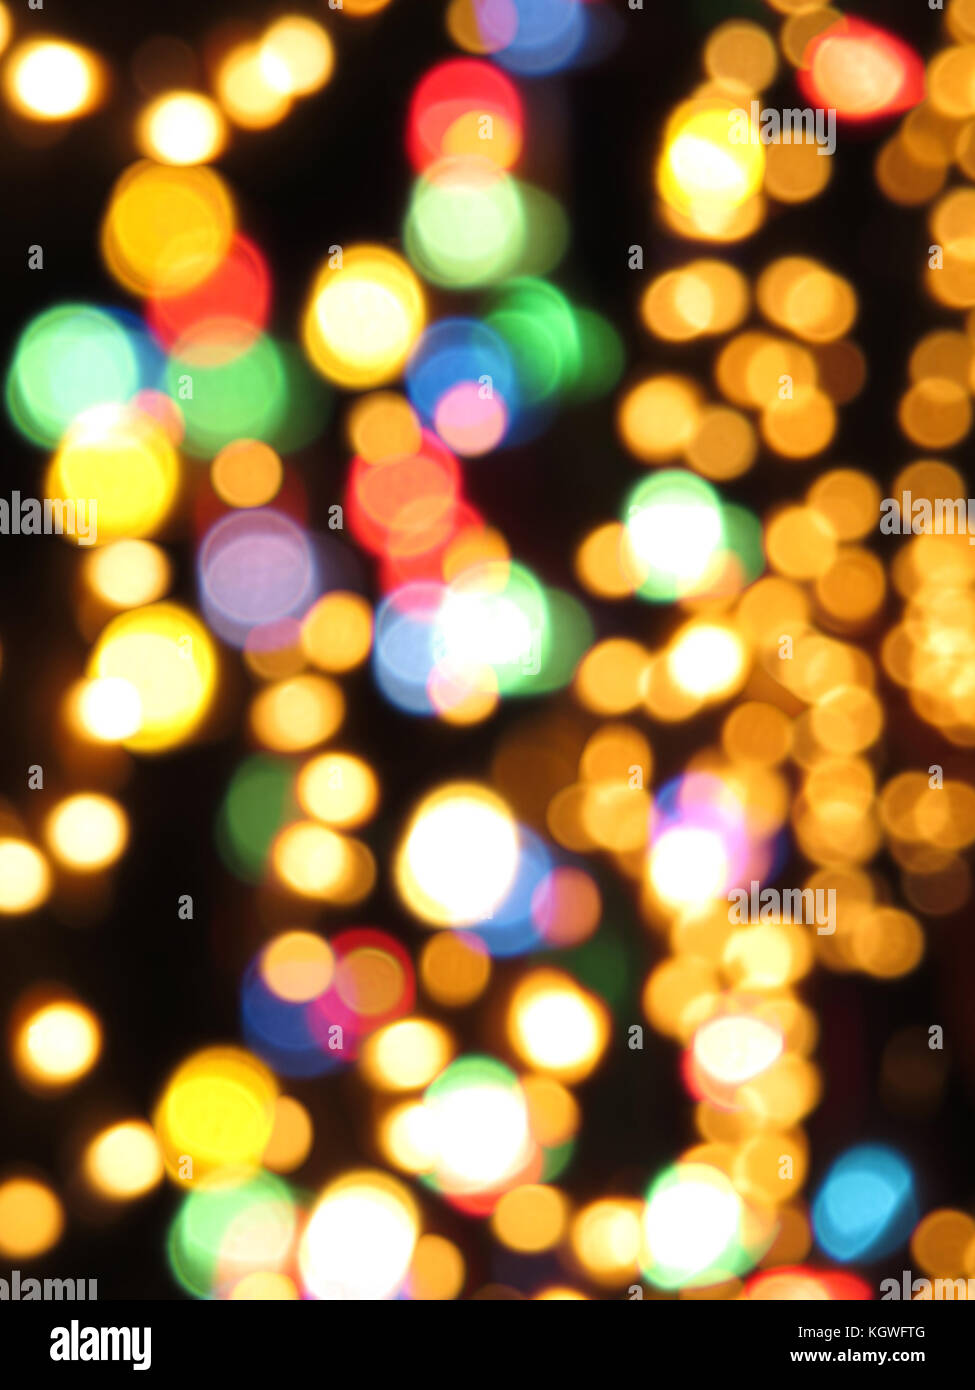 A beautiful background of blurred festive lights in various colors. - Stock Image